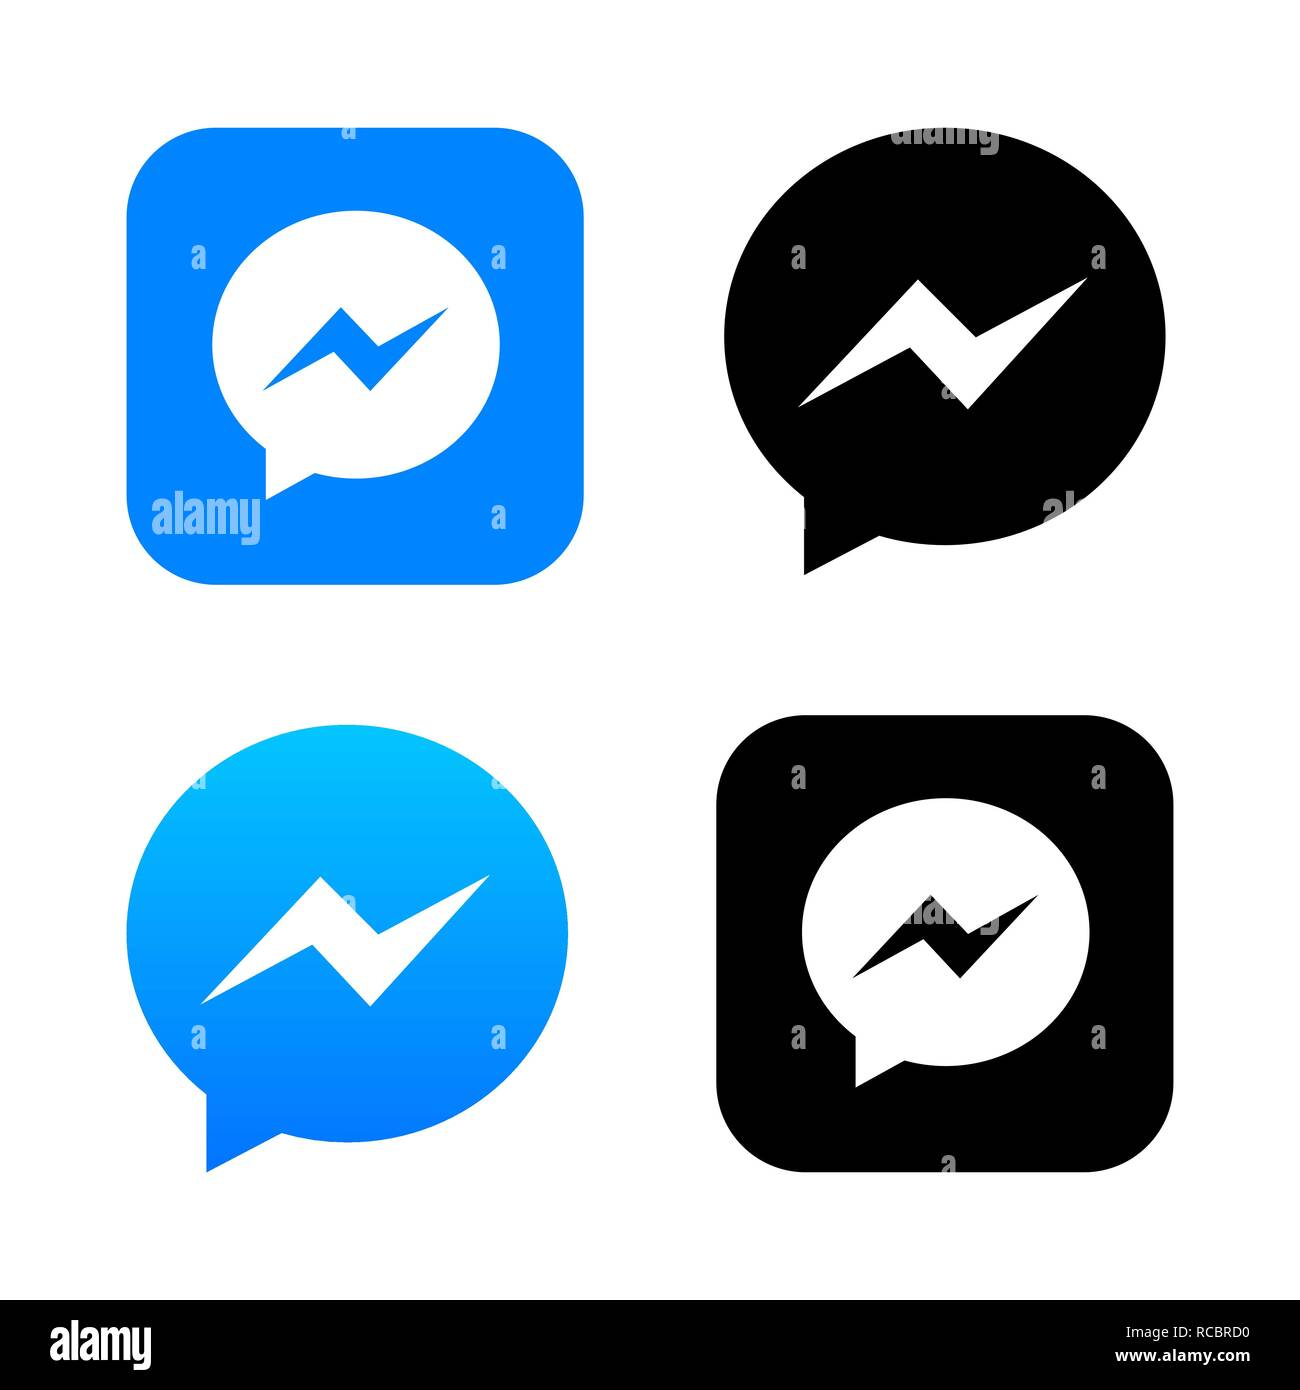 Blue chat app icon with message bubble vector logo on white